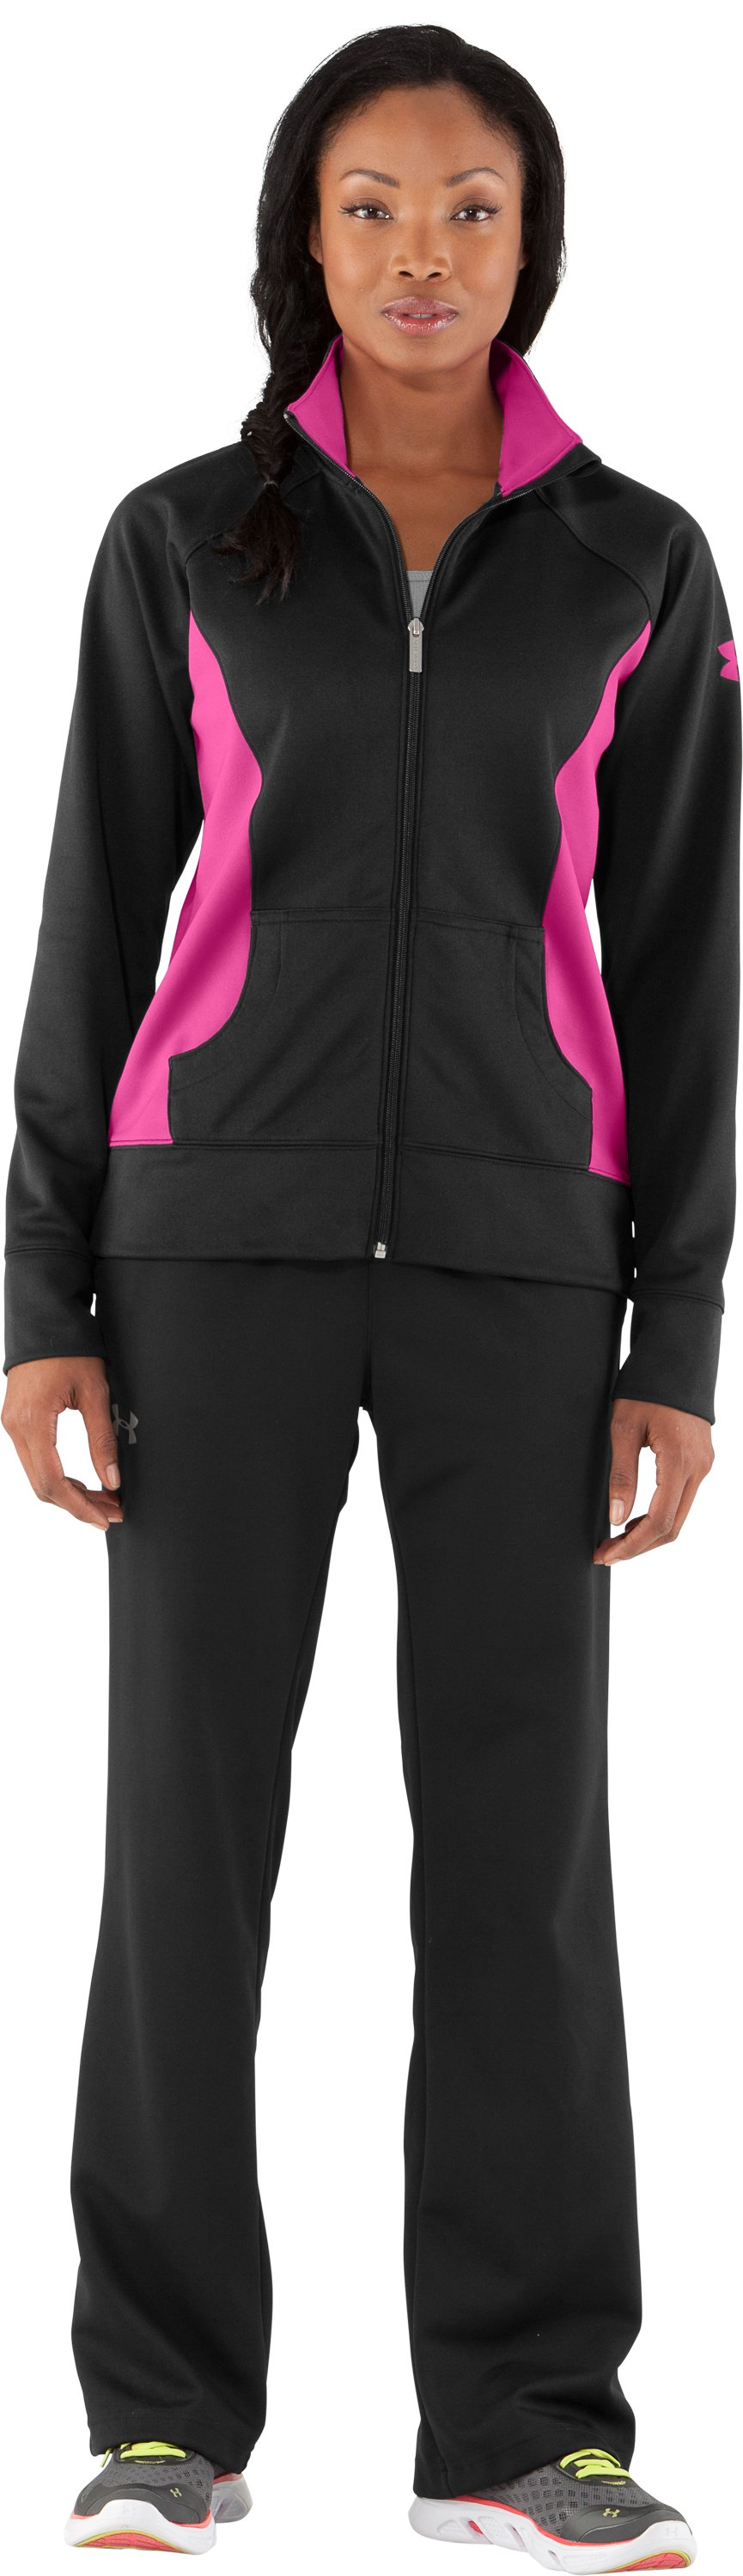 Women's UA Craze Jacket, full size